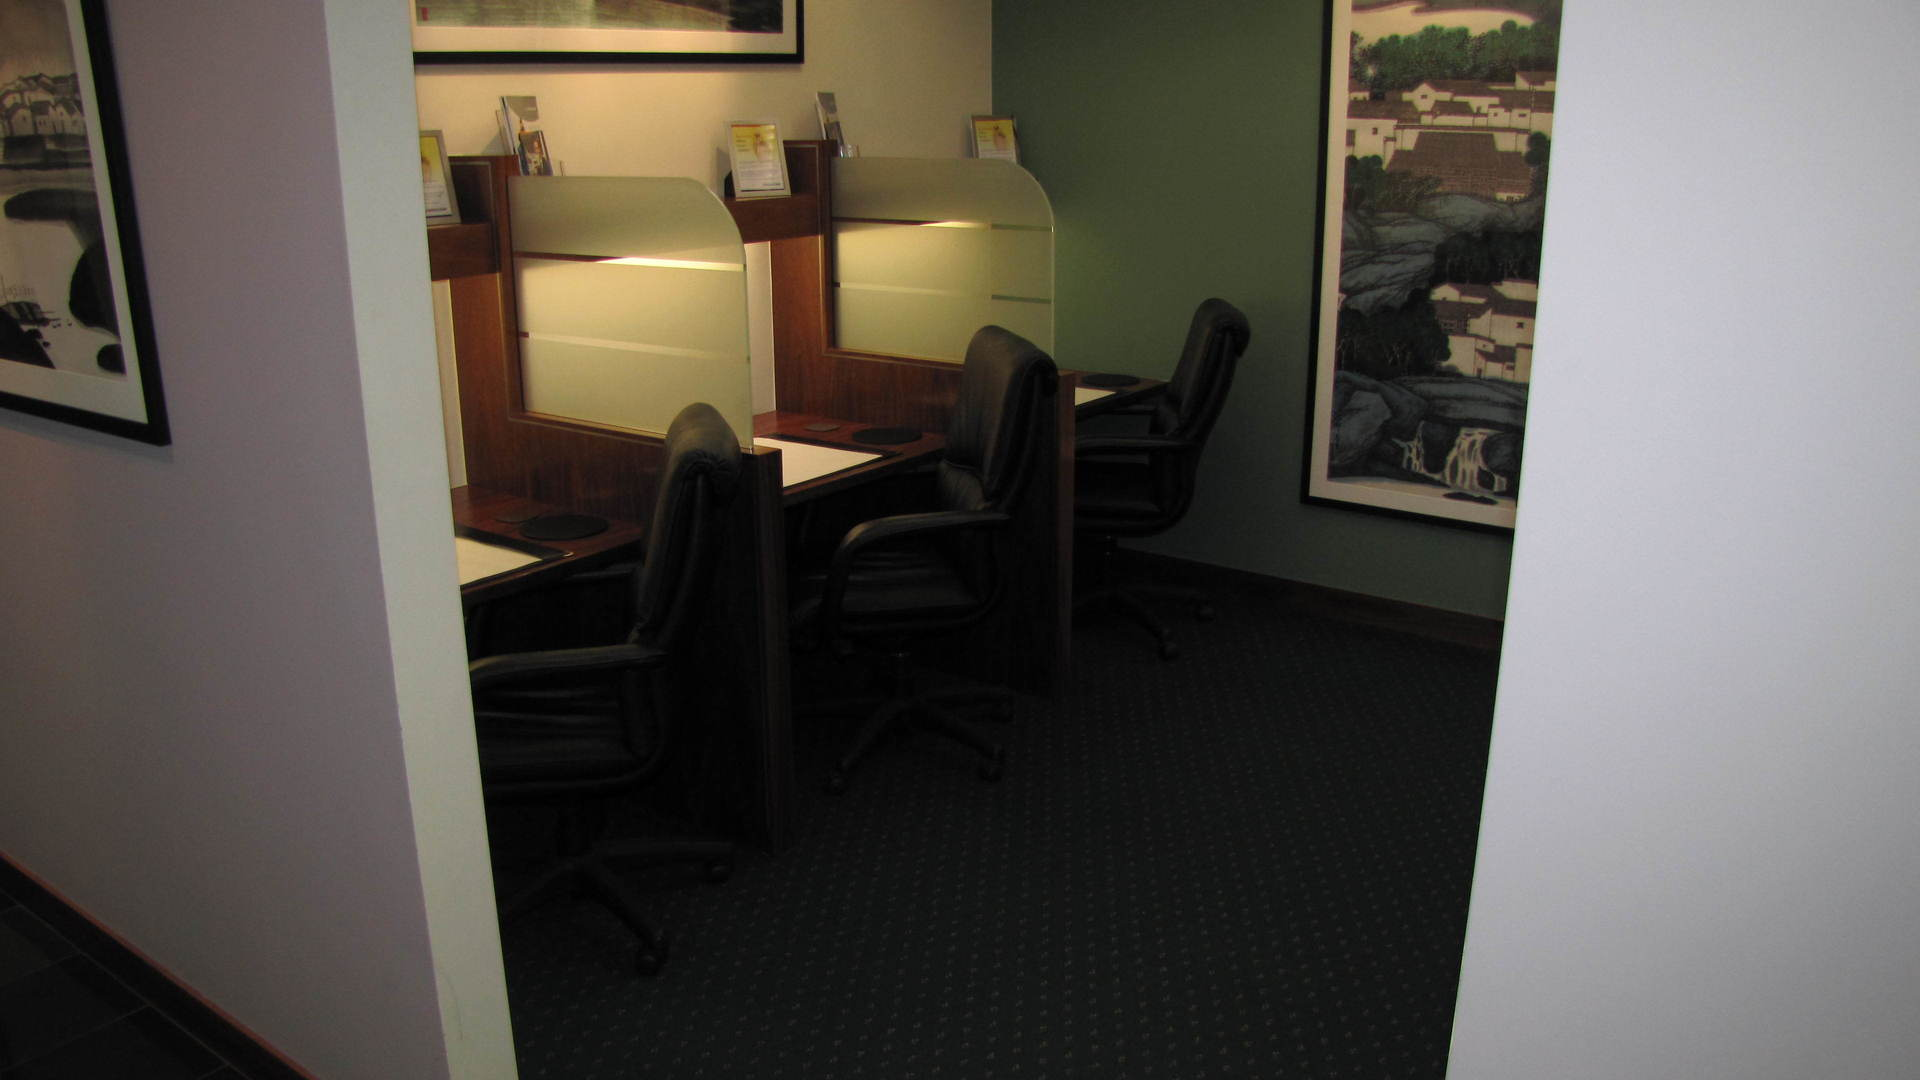 GREAT VALUE MODERN OFFICES SUITES WITH FANTASTIC NATURAL LIGHT